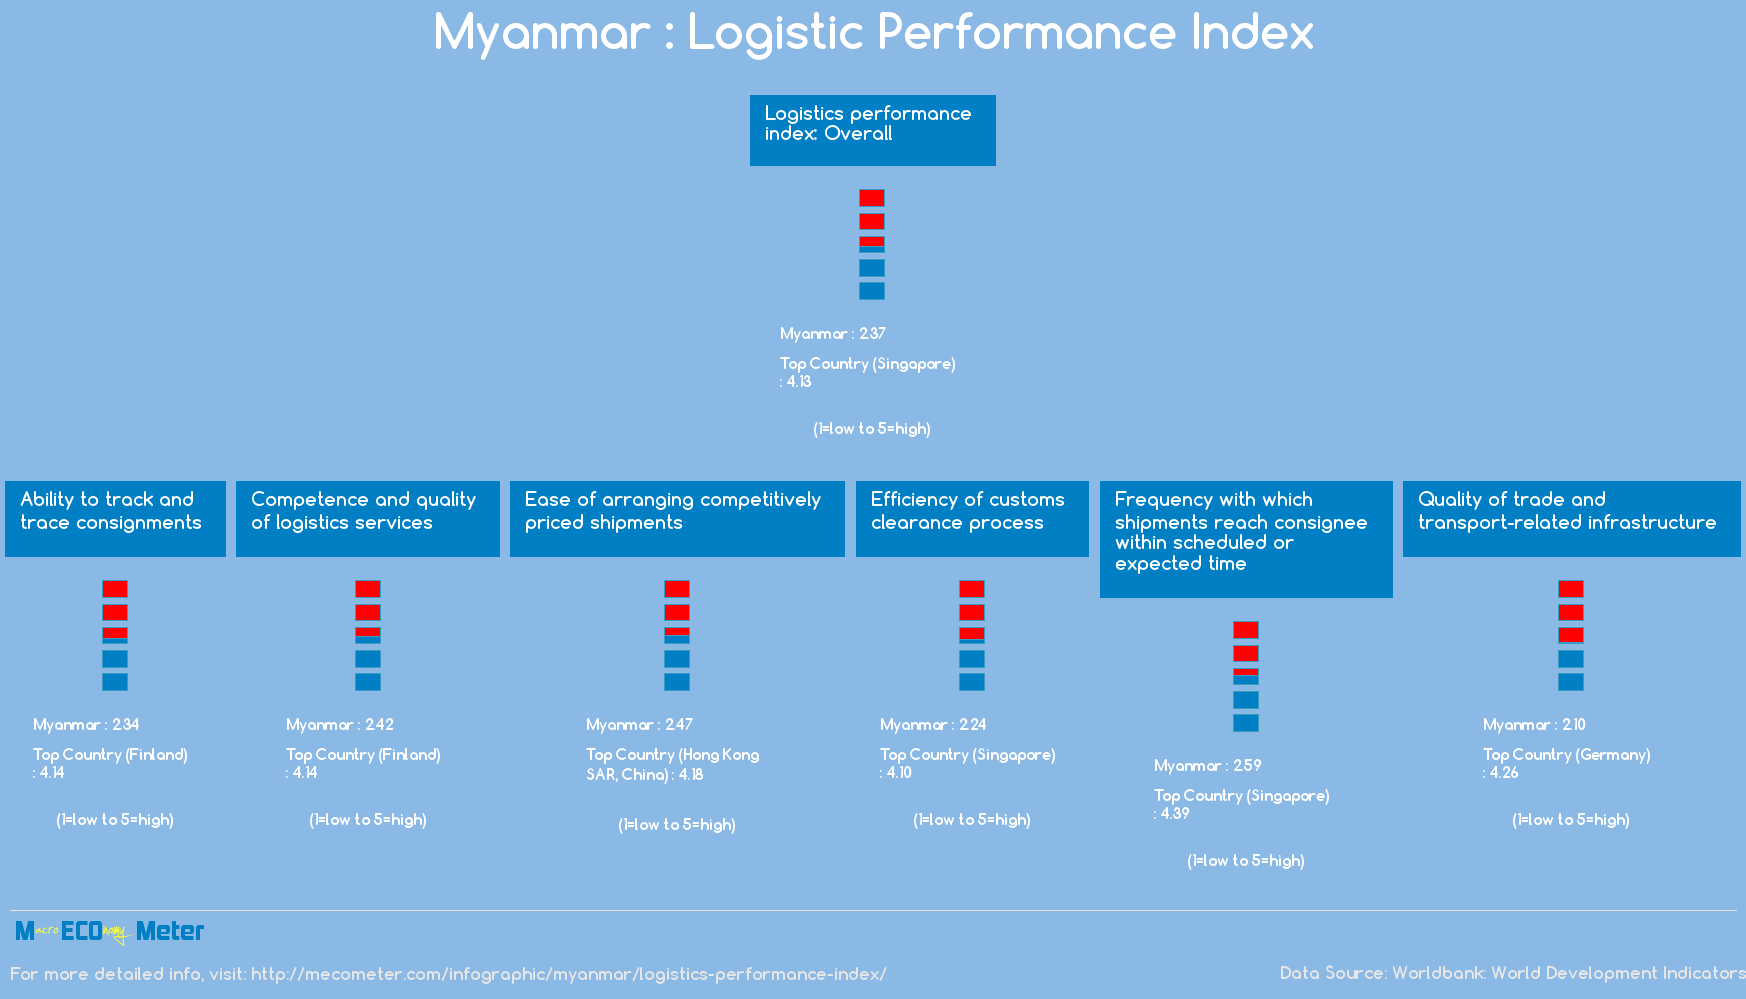 Myanmar : Logistic Performance Index